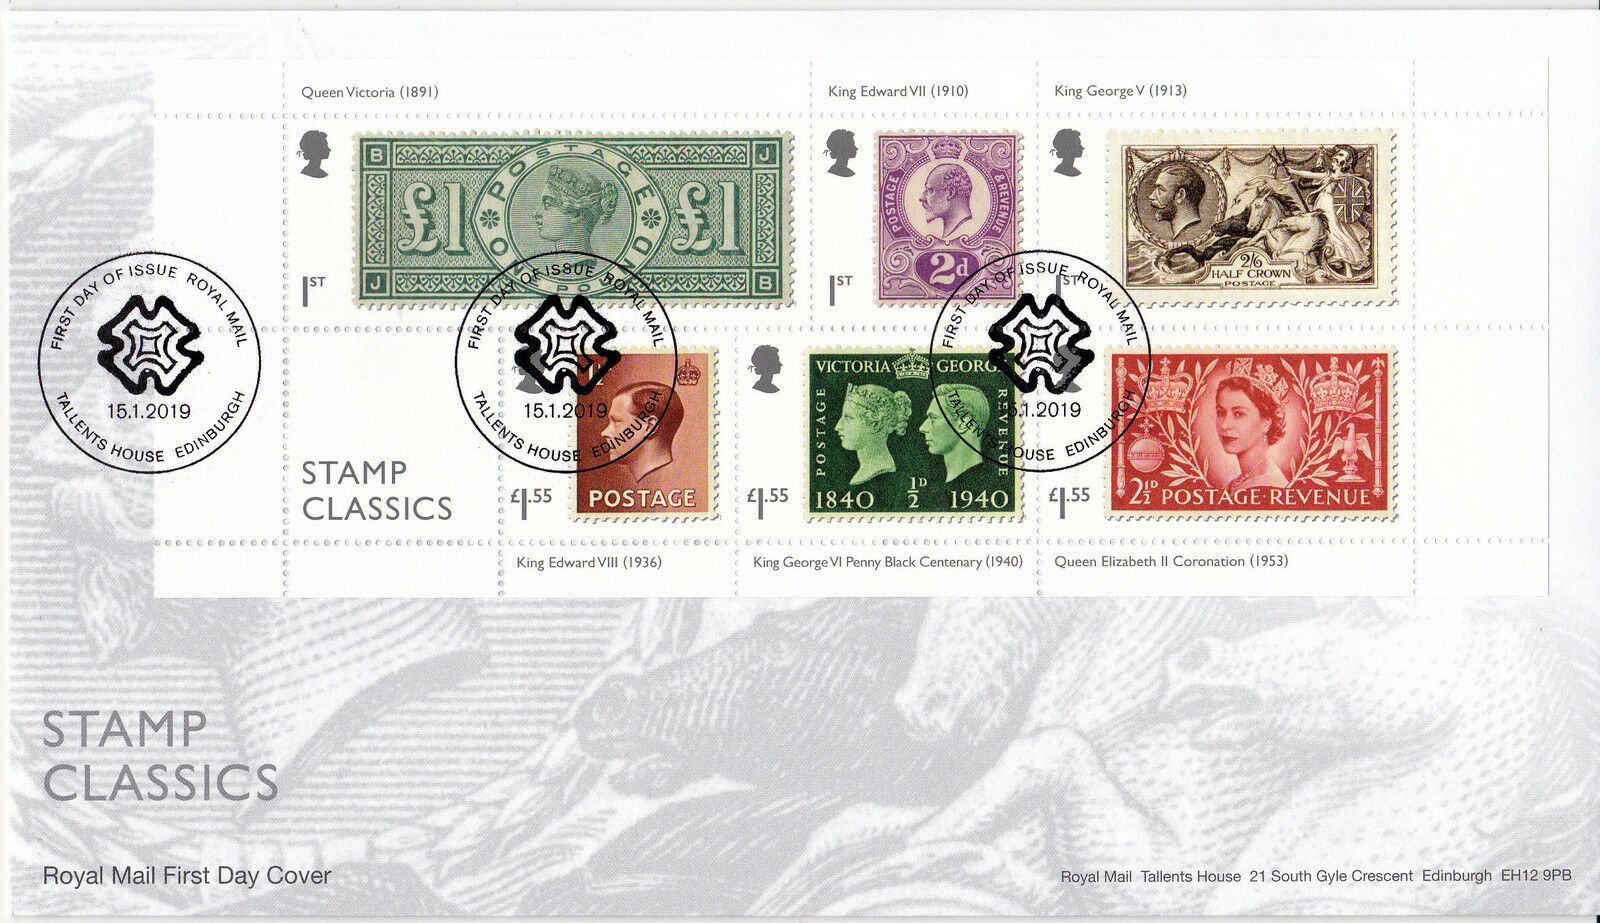 Great Britain - Stamp Classics (January 15, 2019) first day cover - Edinburgh